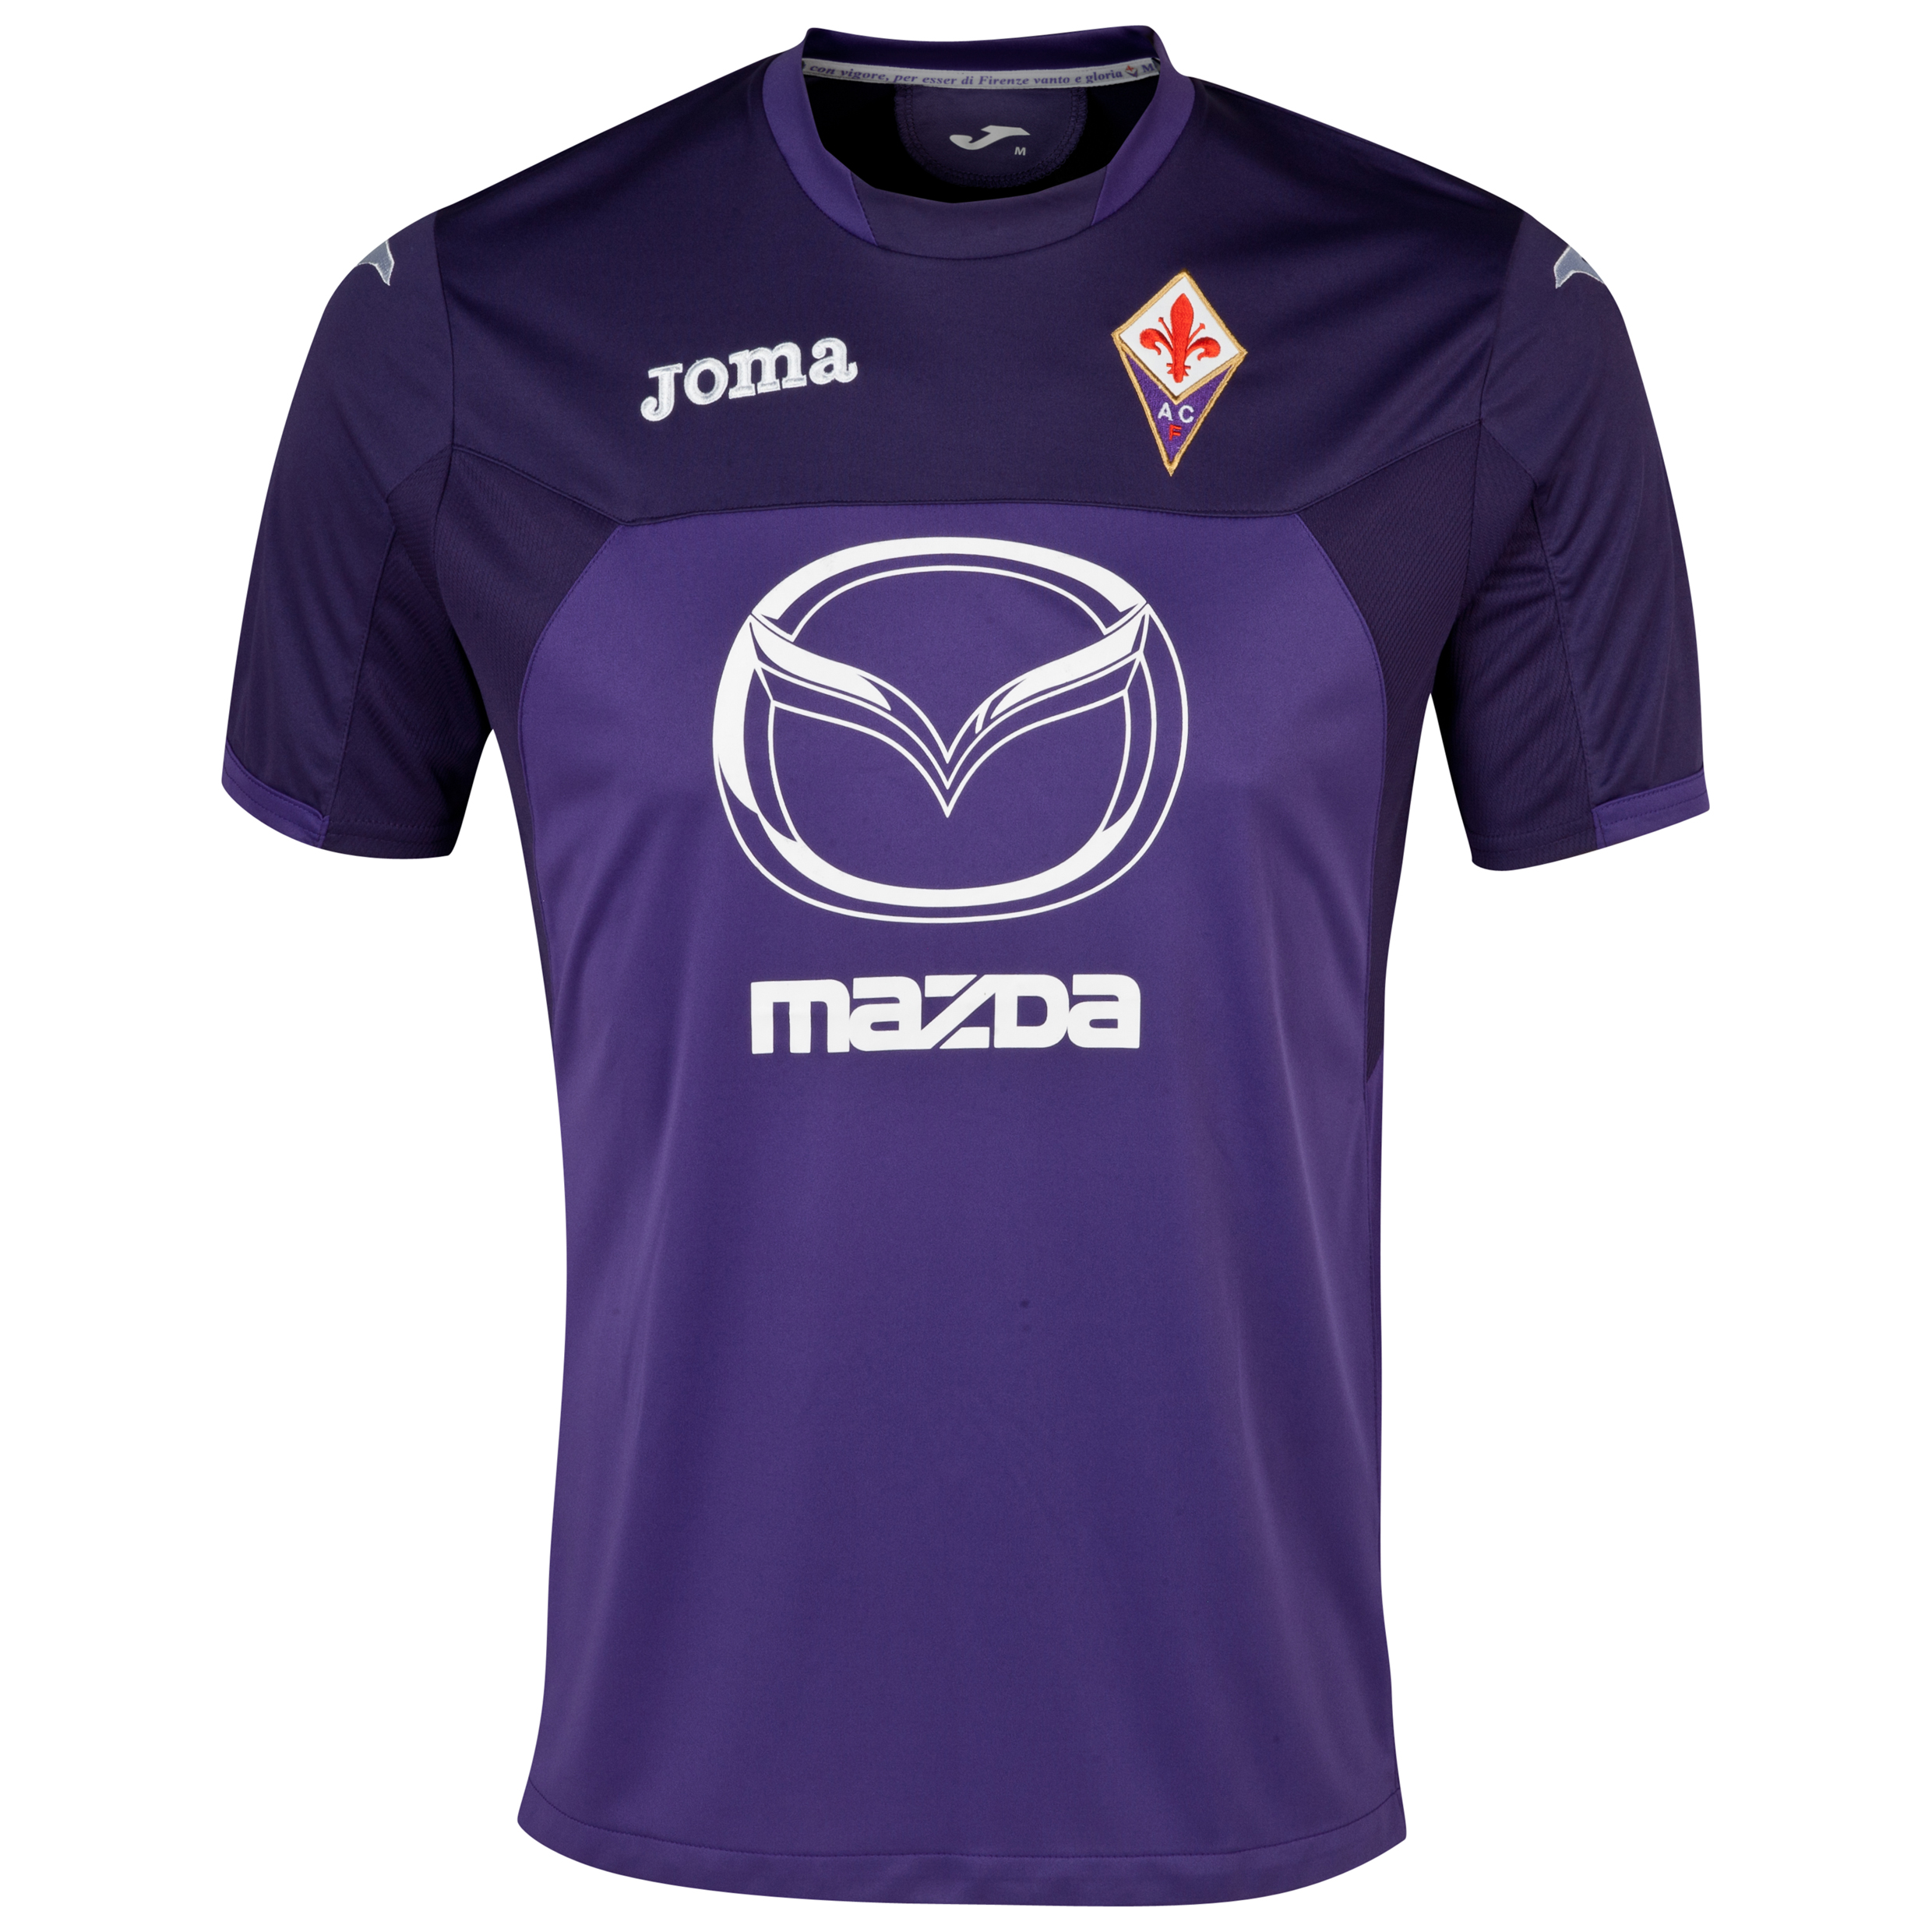 ACF Fiorentina Warm Up T-Shirt Purple